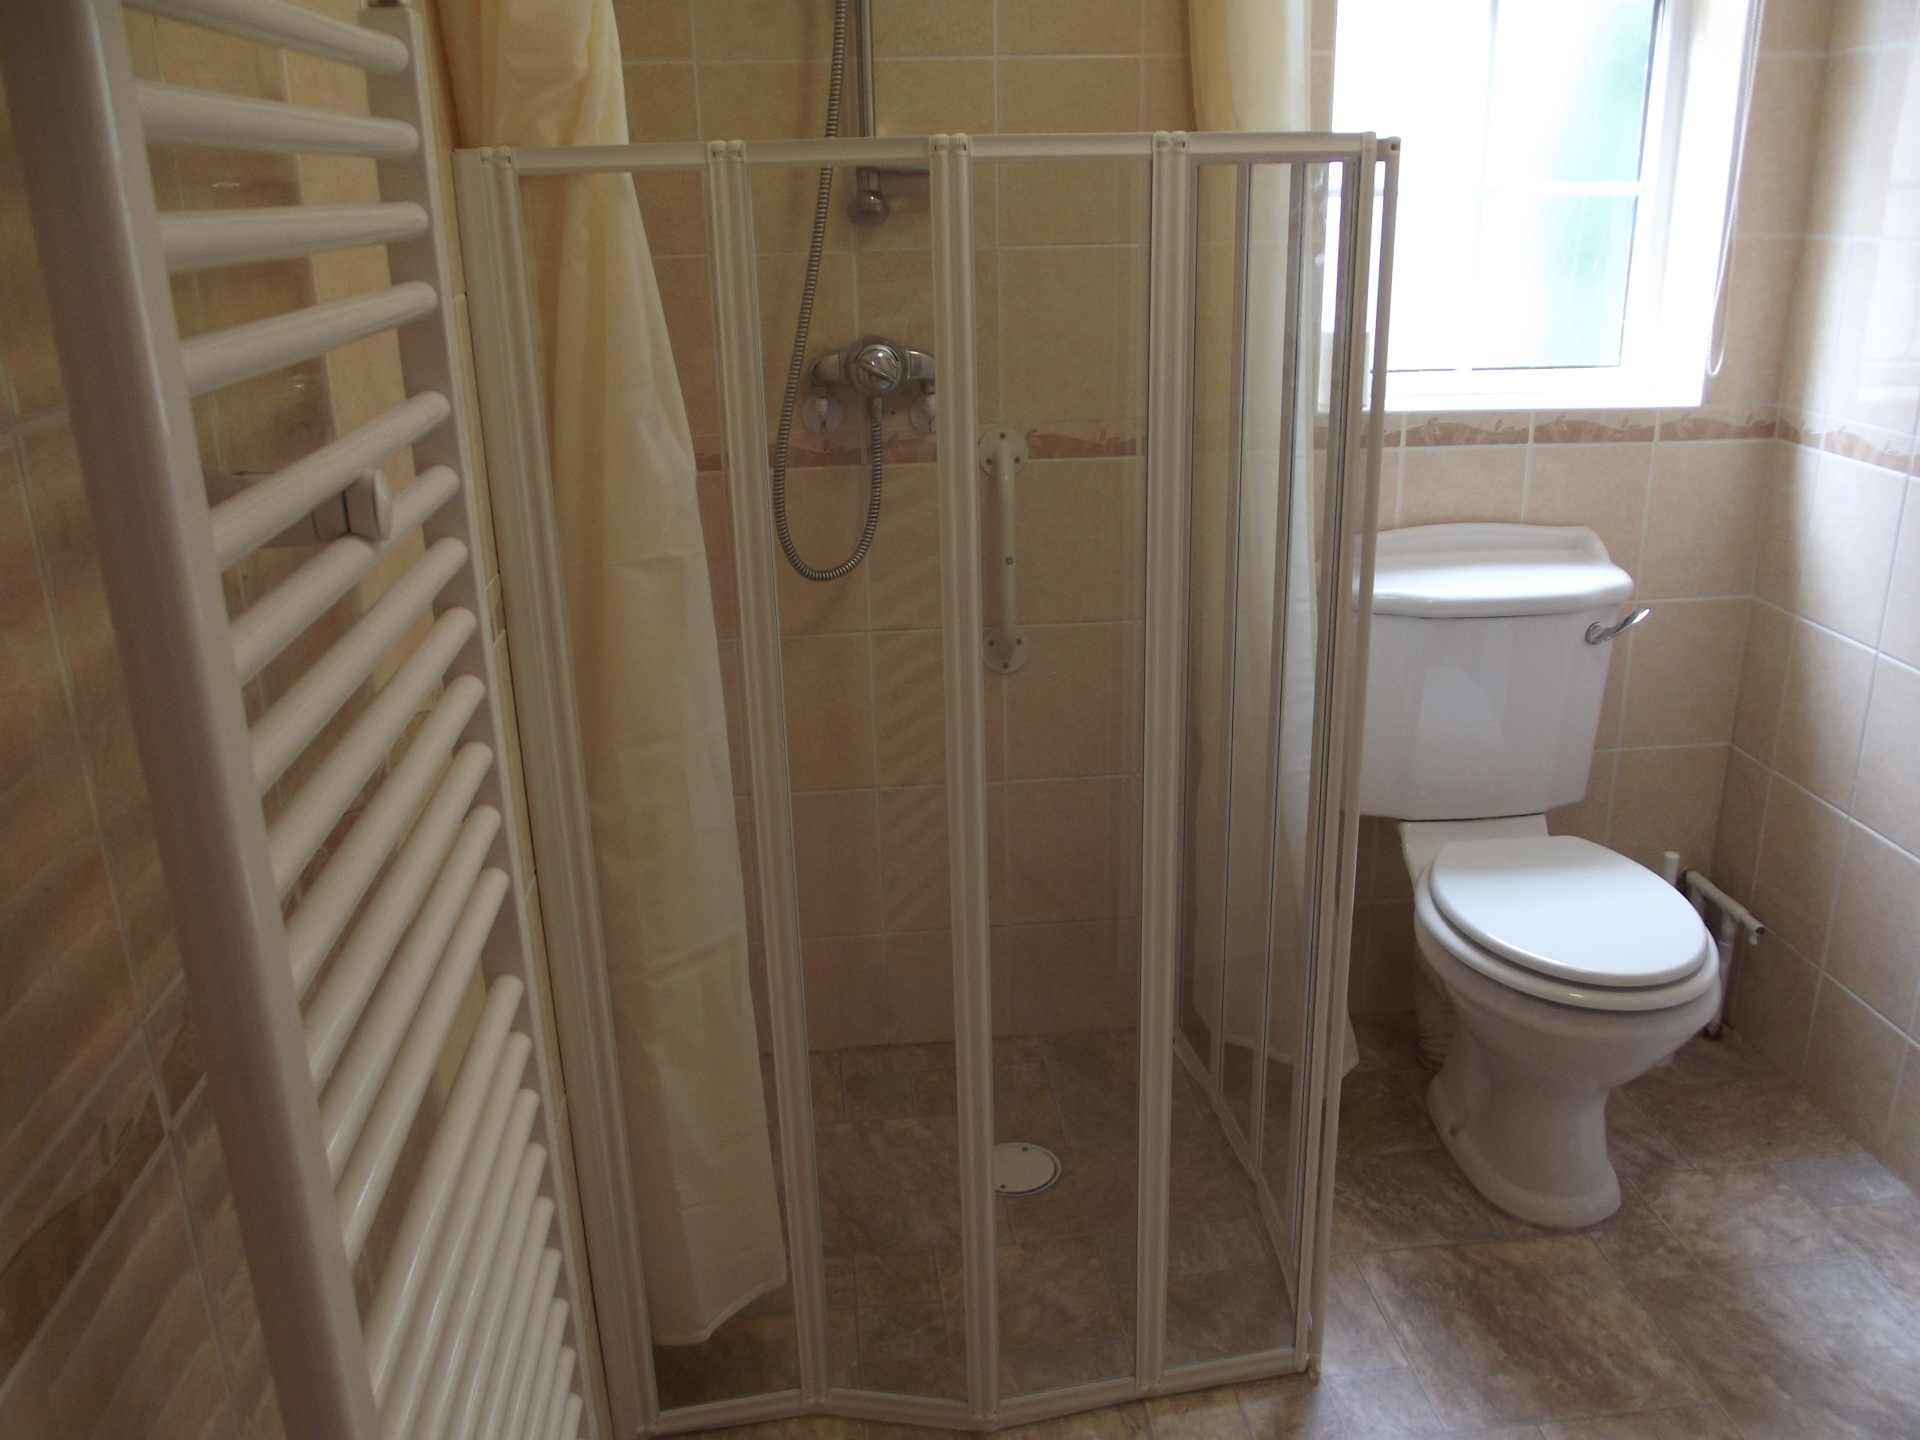 easy access shower room